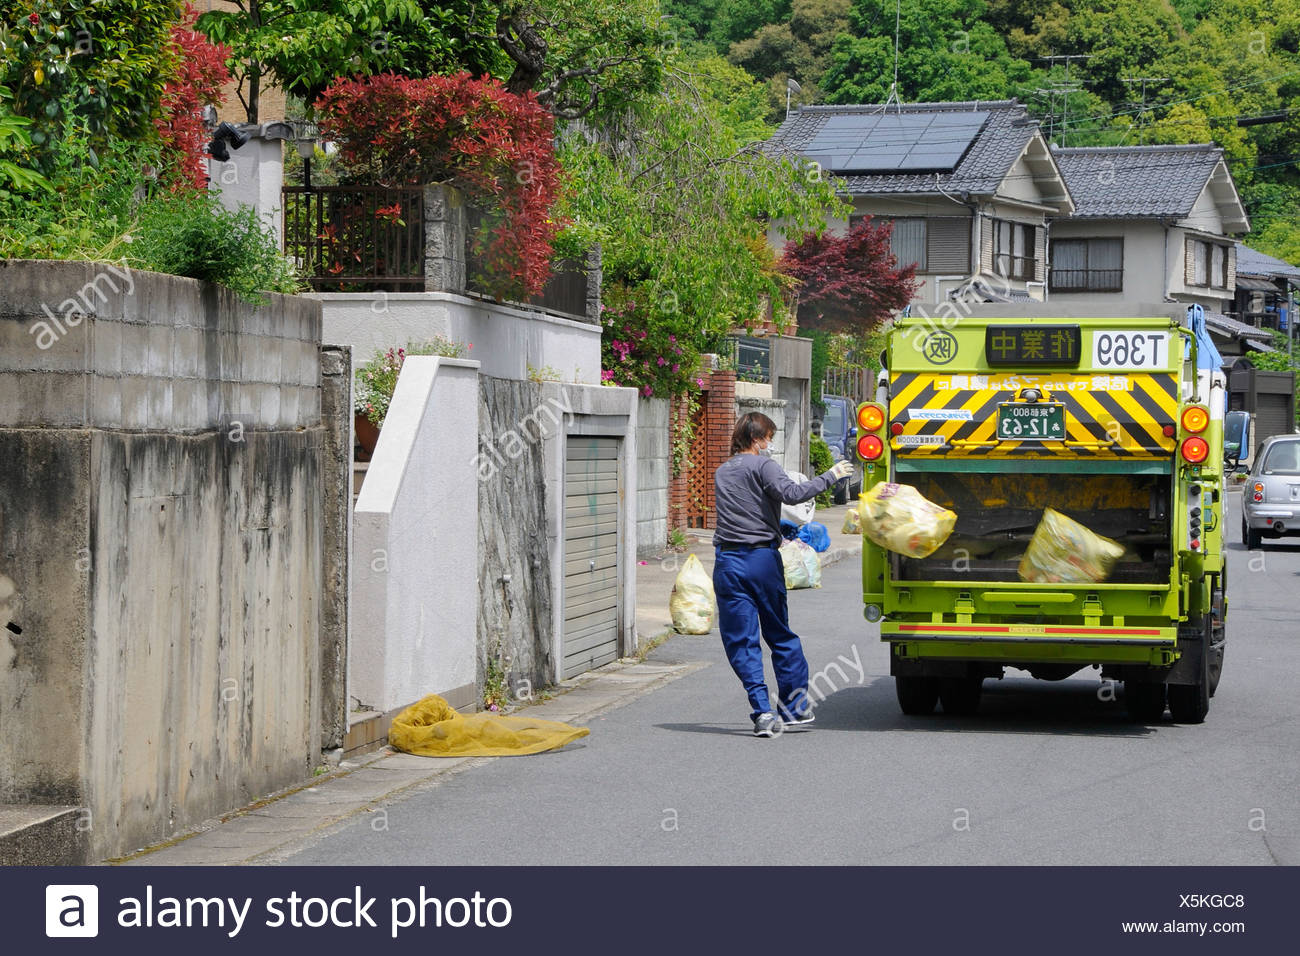 Refuse disposal with small garbage truck, Iwakura, Kyoto, Japan, Asia - Stock Image